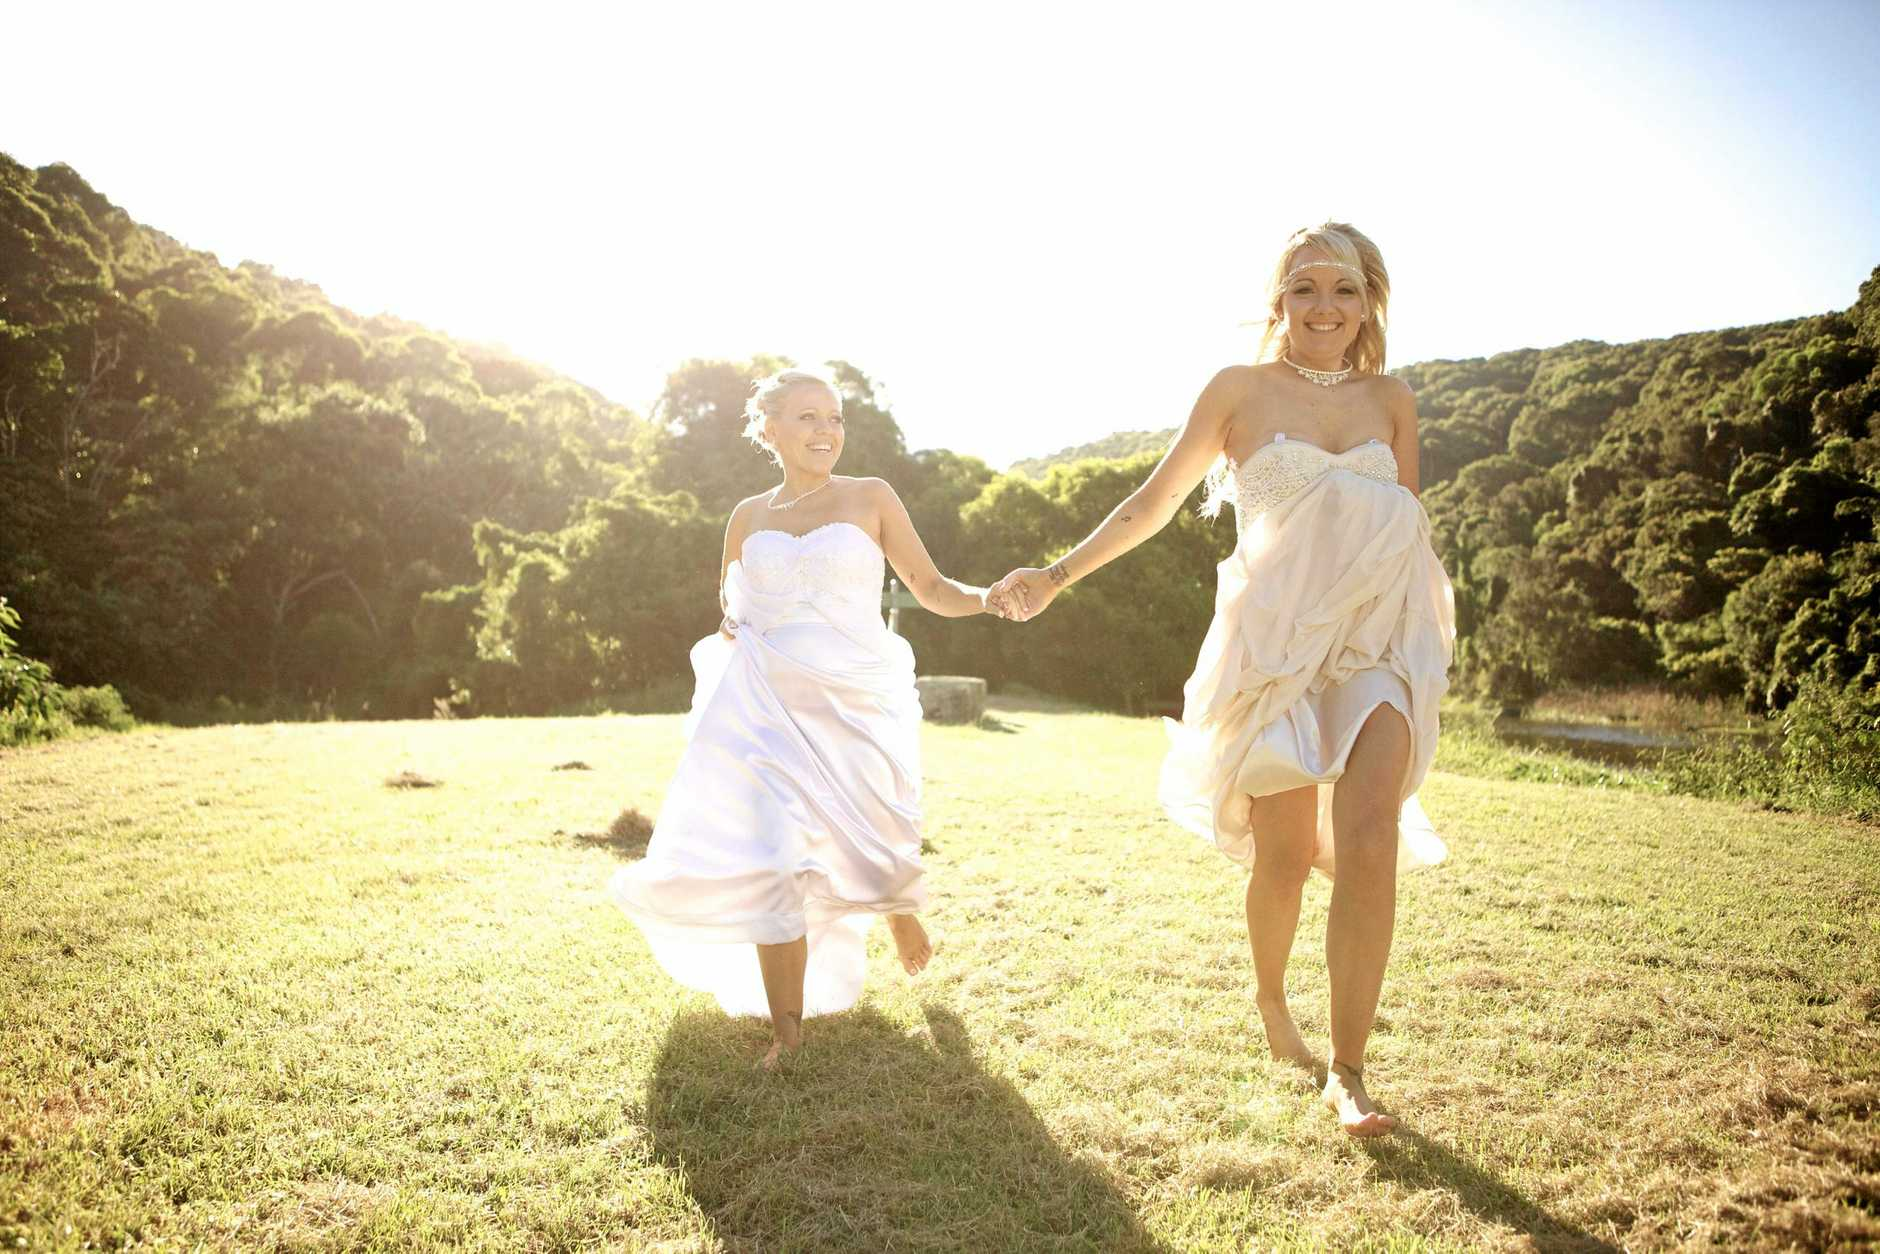 ATTENDING: MKR's Carly and Tresne travelled to New Zealand to marry before the legislation change.